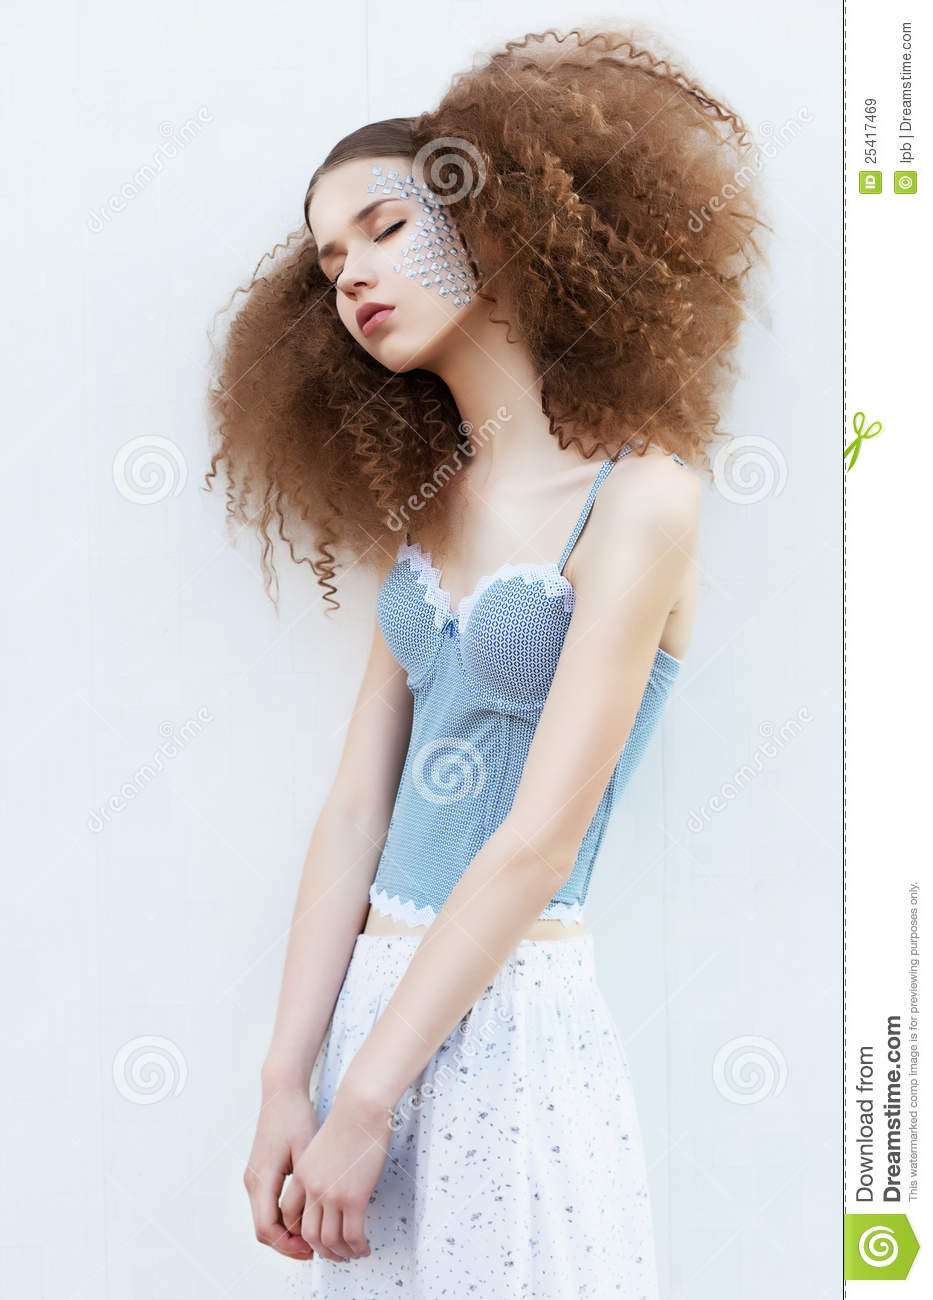 Sensual young slimfemale with closed eyes standing